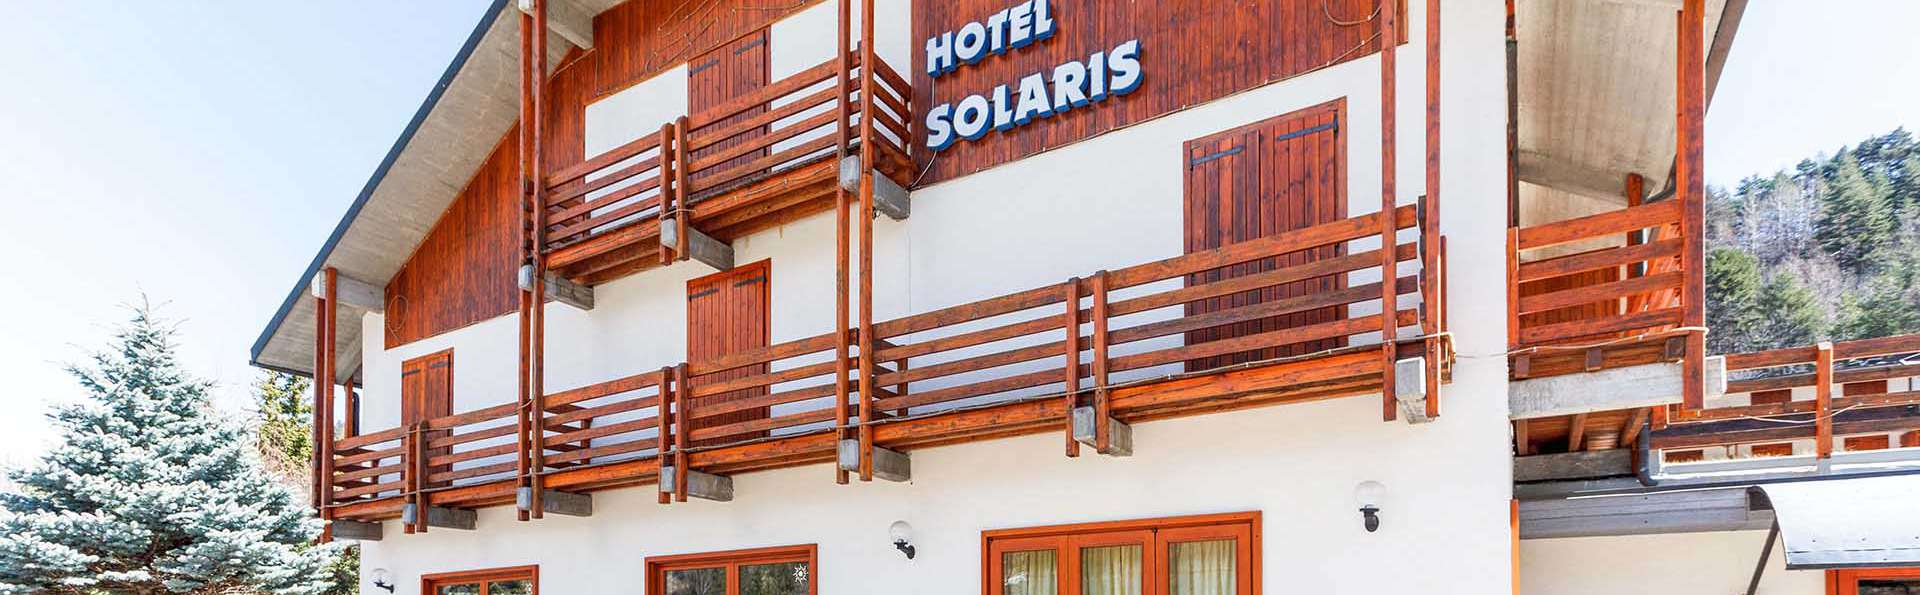 Club Hotel Solaris - EDIT_FRONT_01__3_.jpg